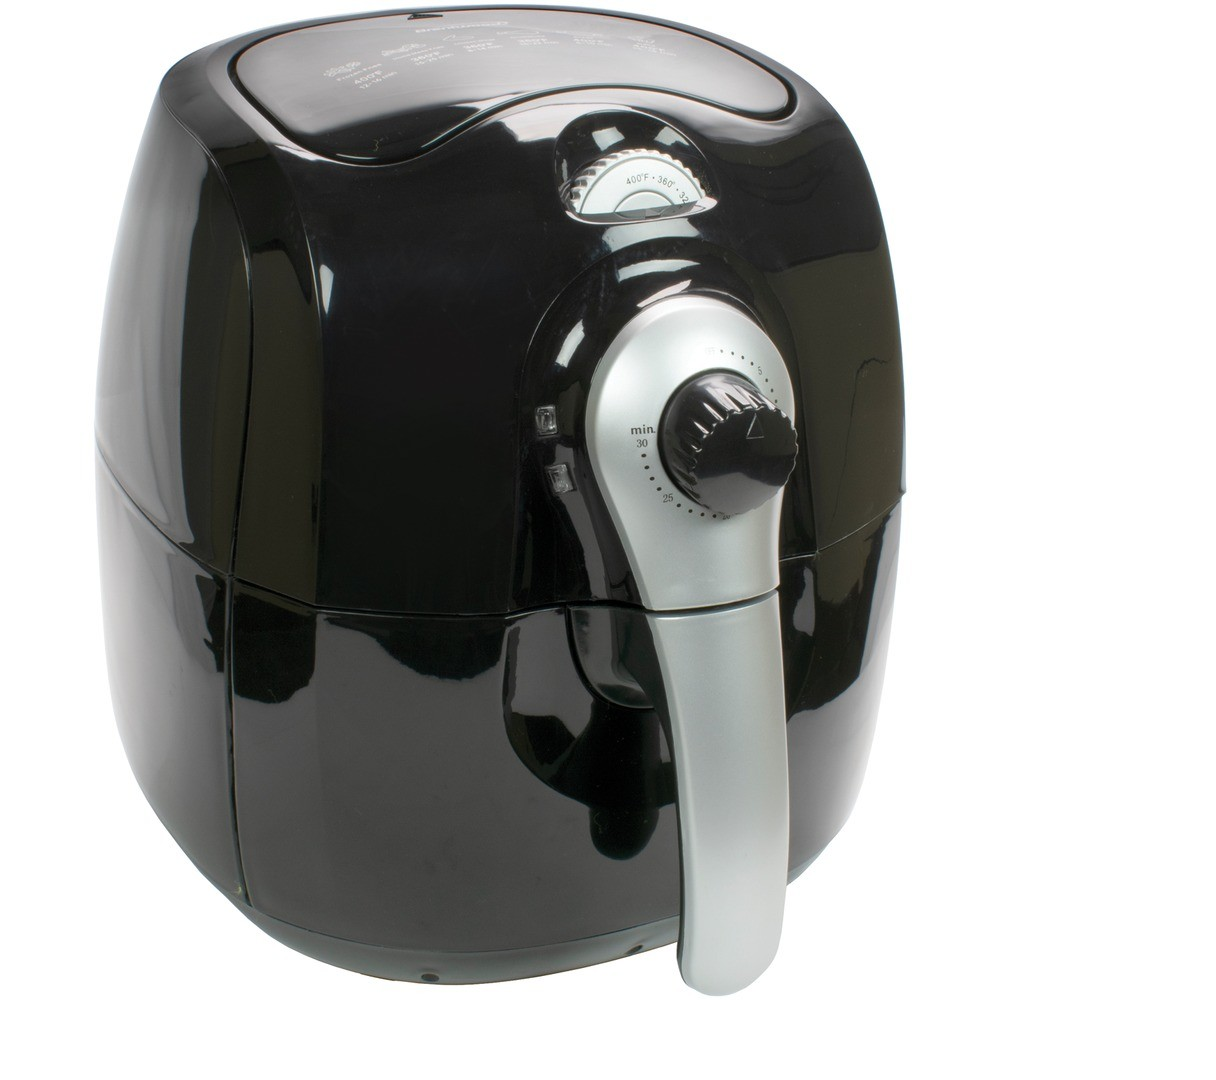 Brentwood Air Fryer 1400W 3.7-Quart